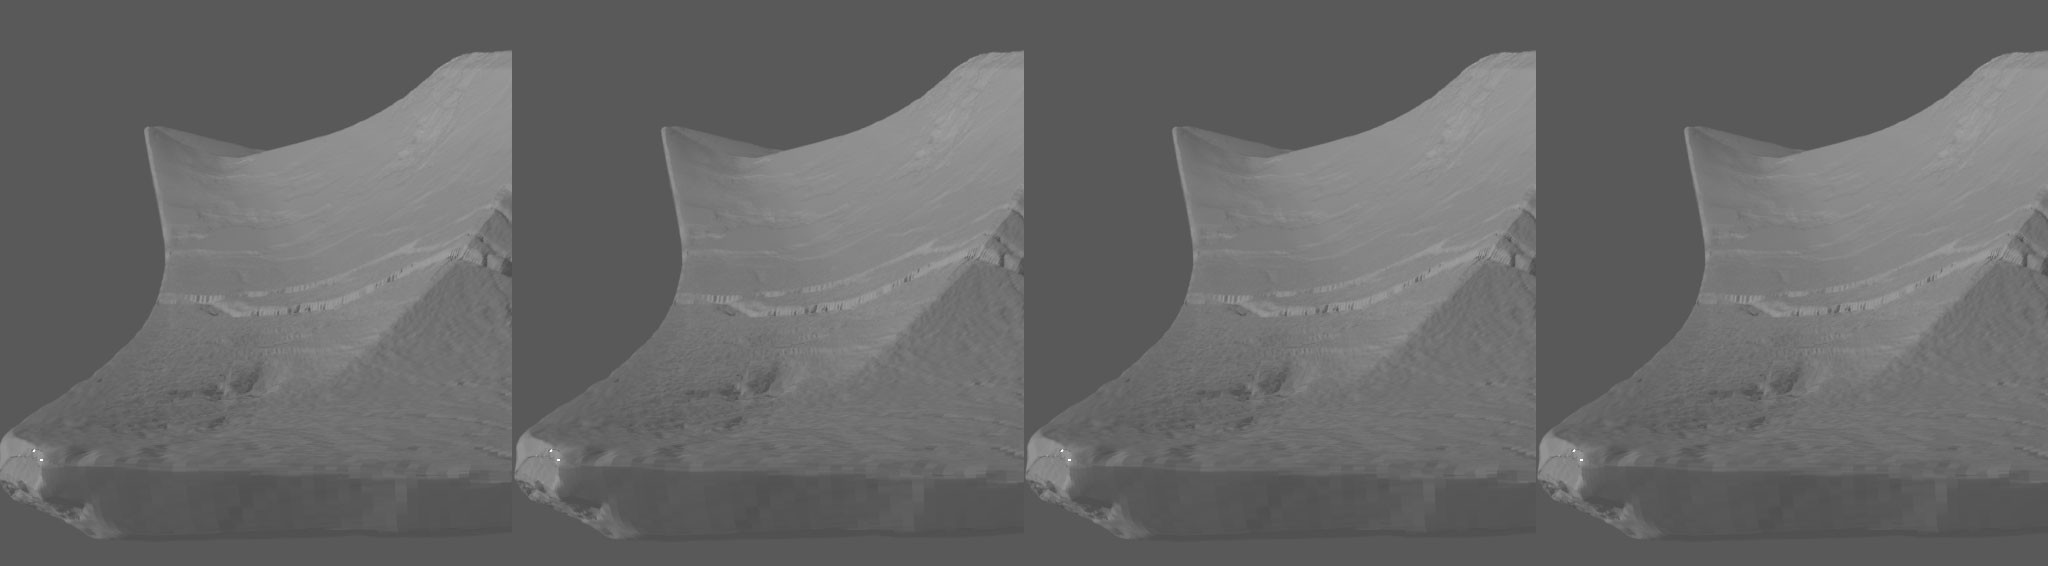 highres sculpt for comparison with below. Note the sharp edges get lost e.g. the damaged corner